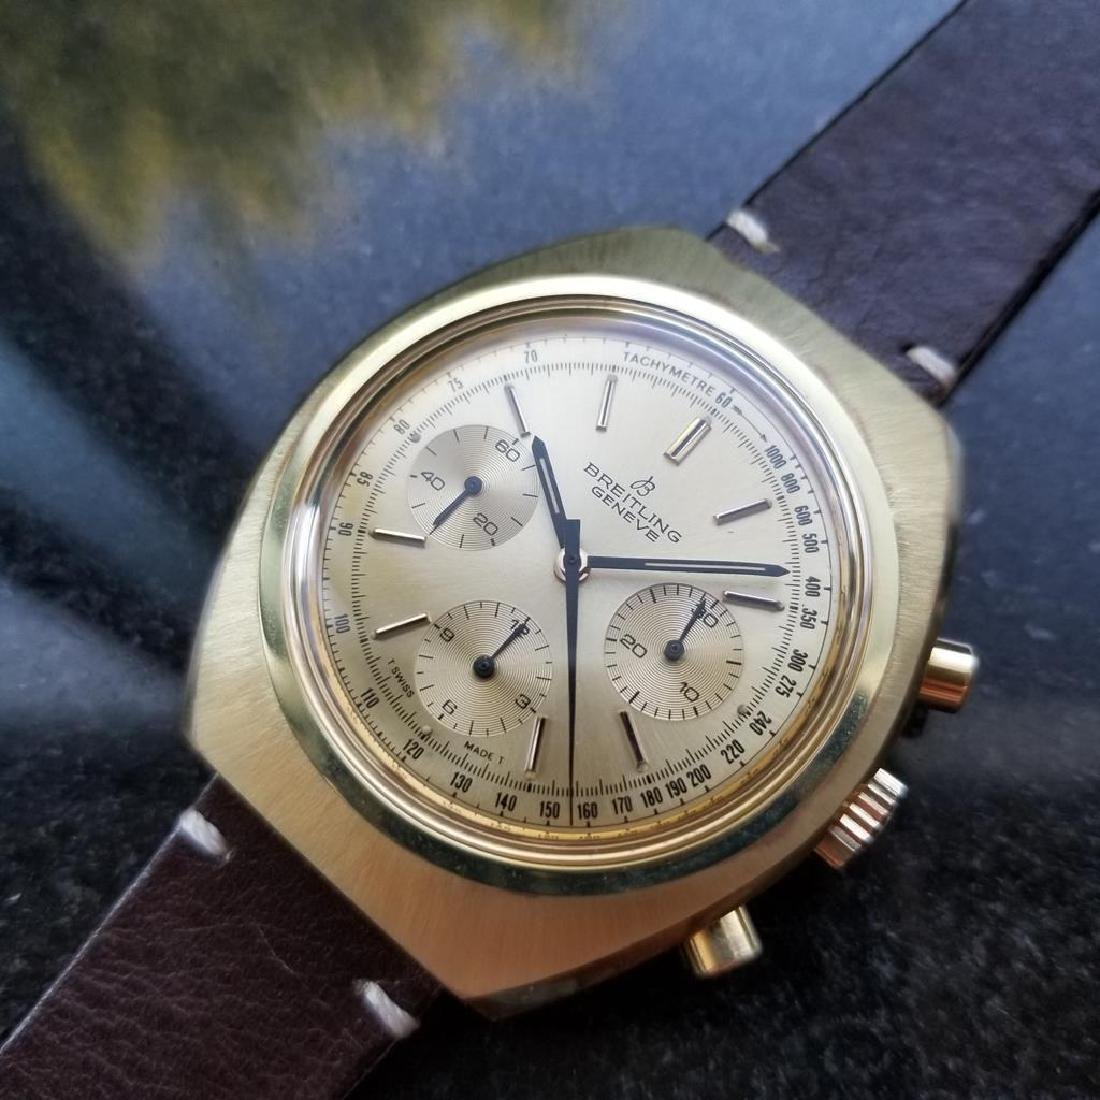 BREITLING 1451 Tricompax Manual Wind Chronograph 42mm